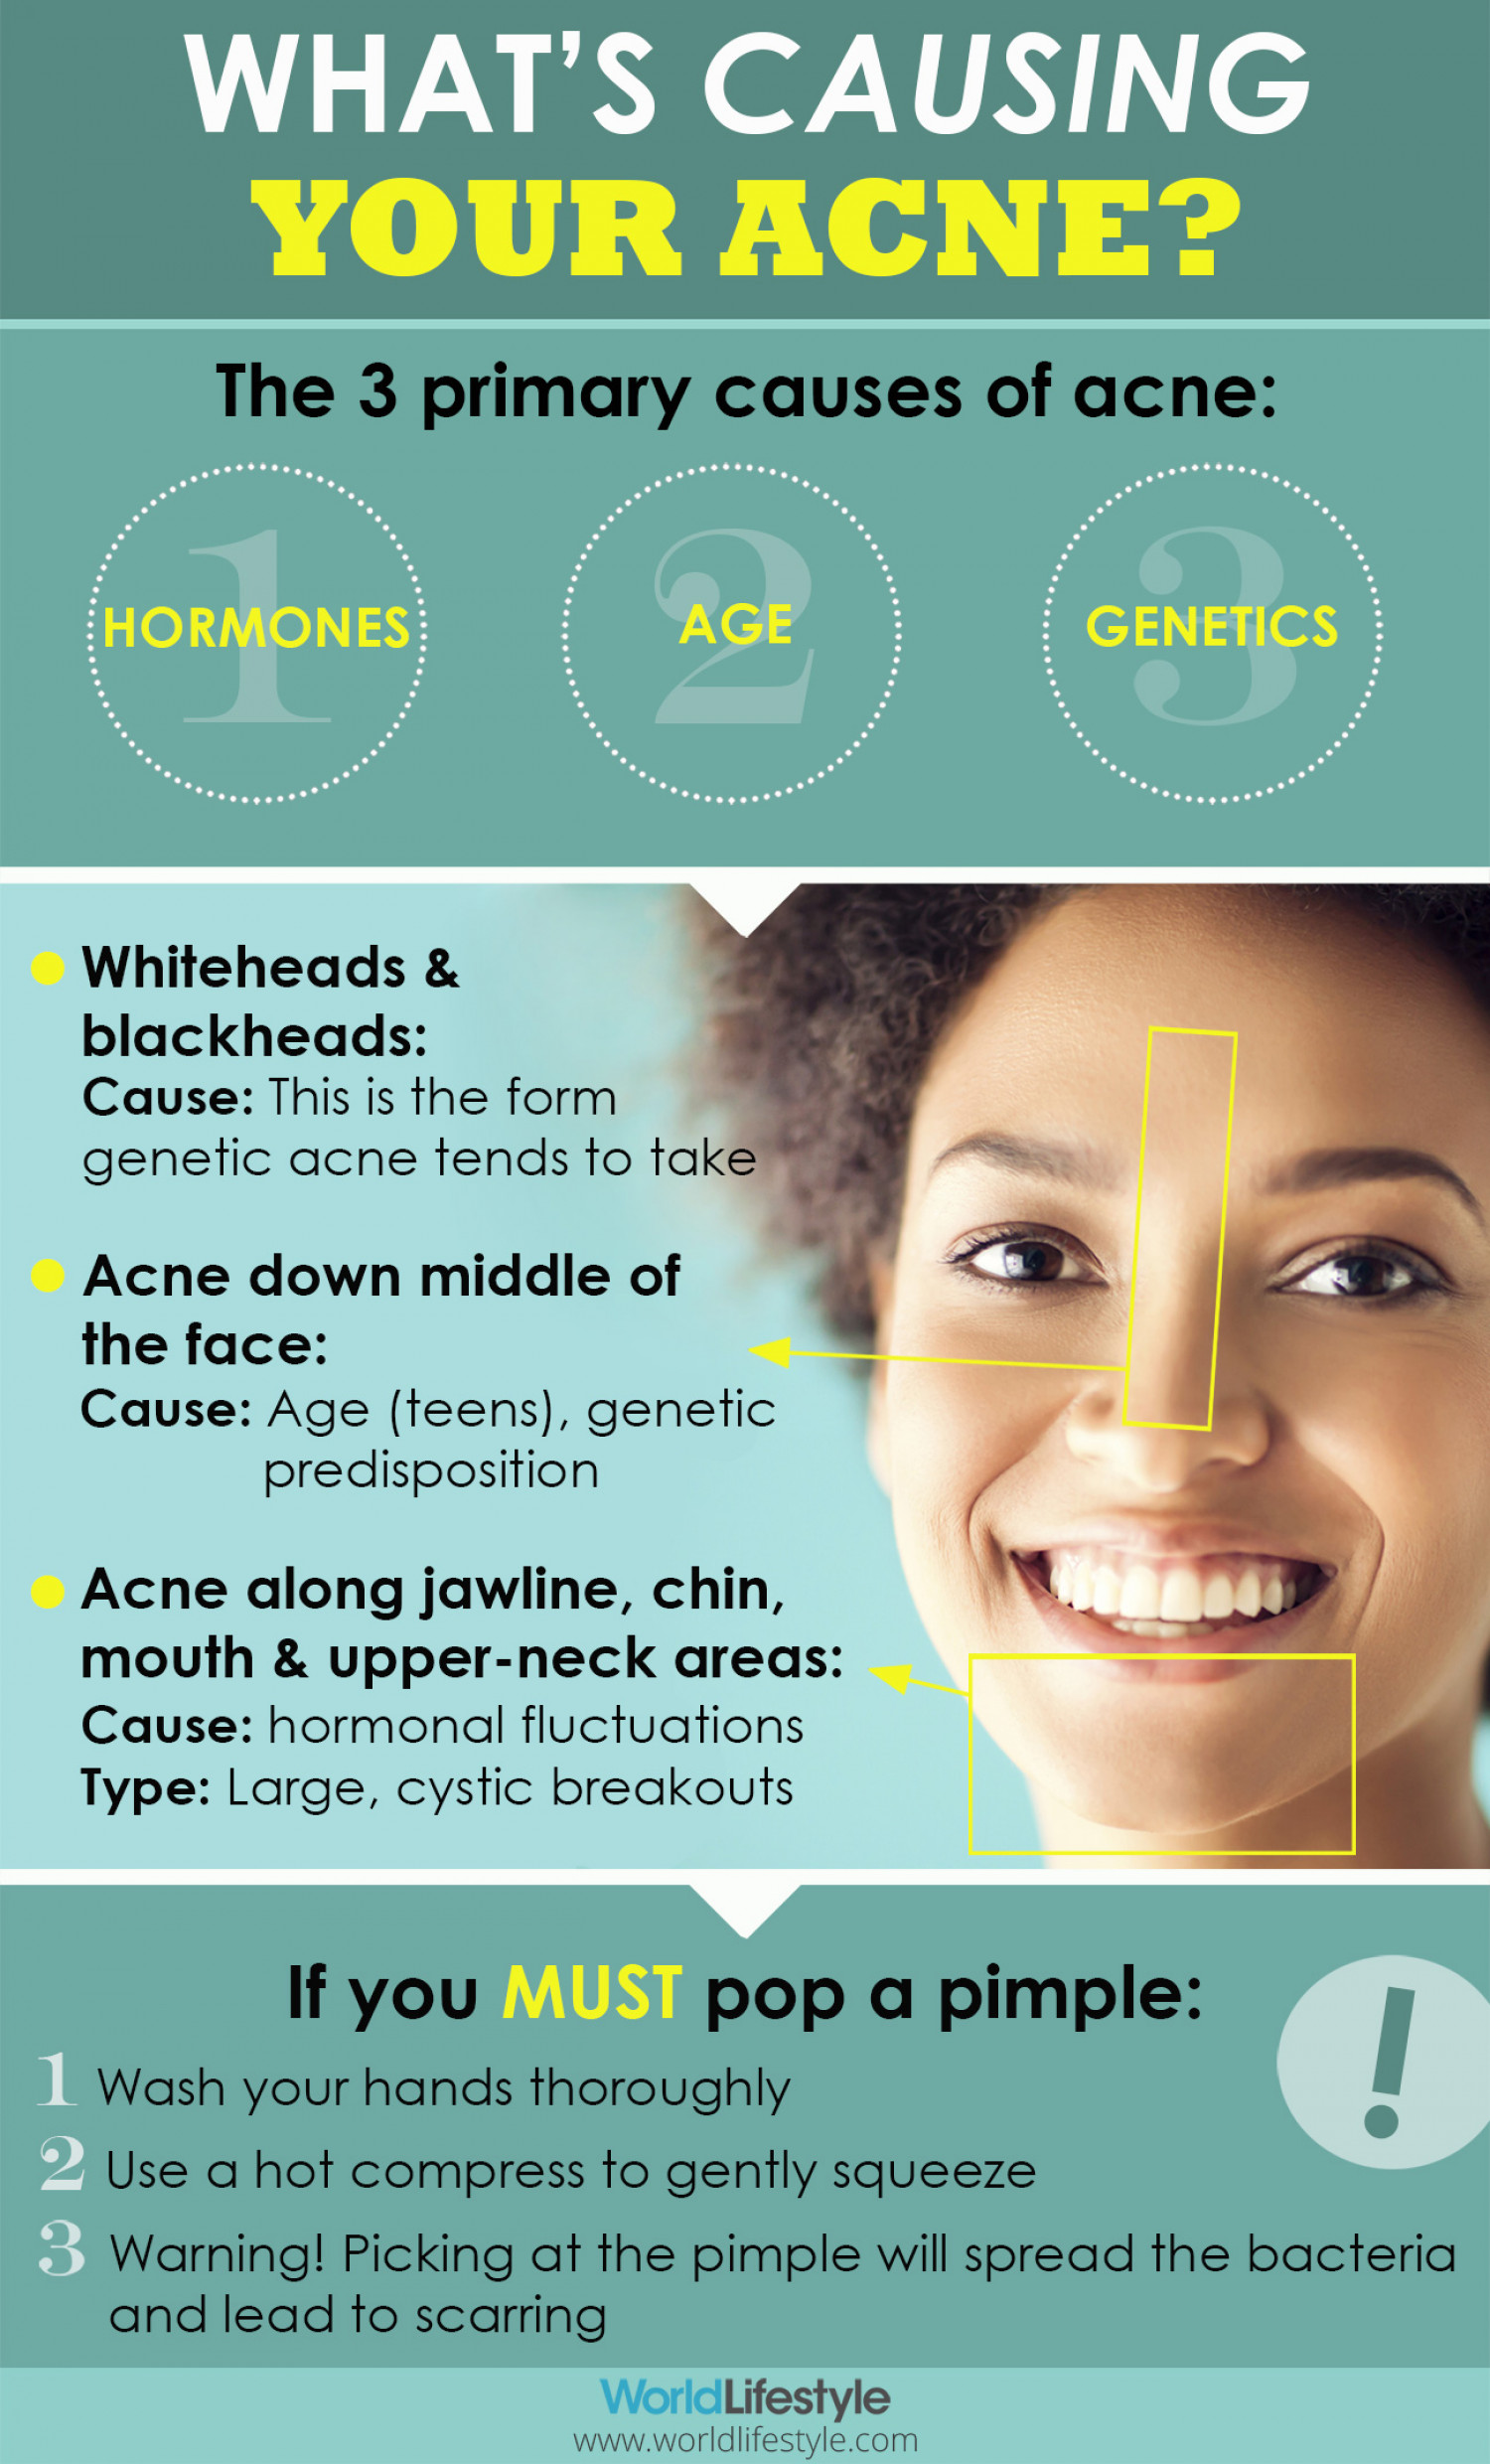 What's Causing Your Acne? Infographic